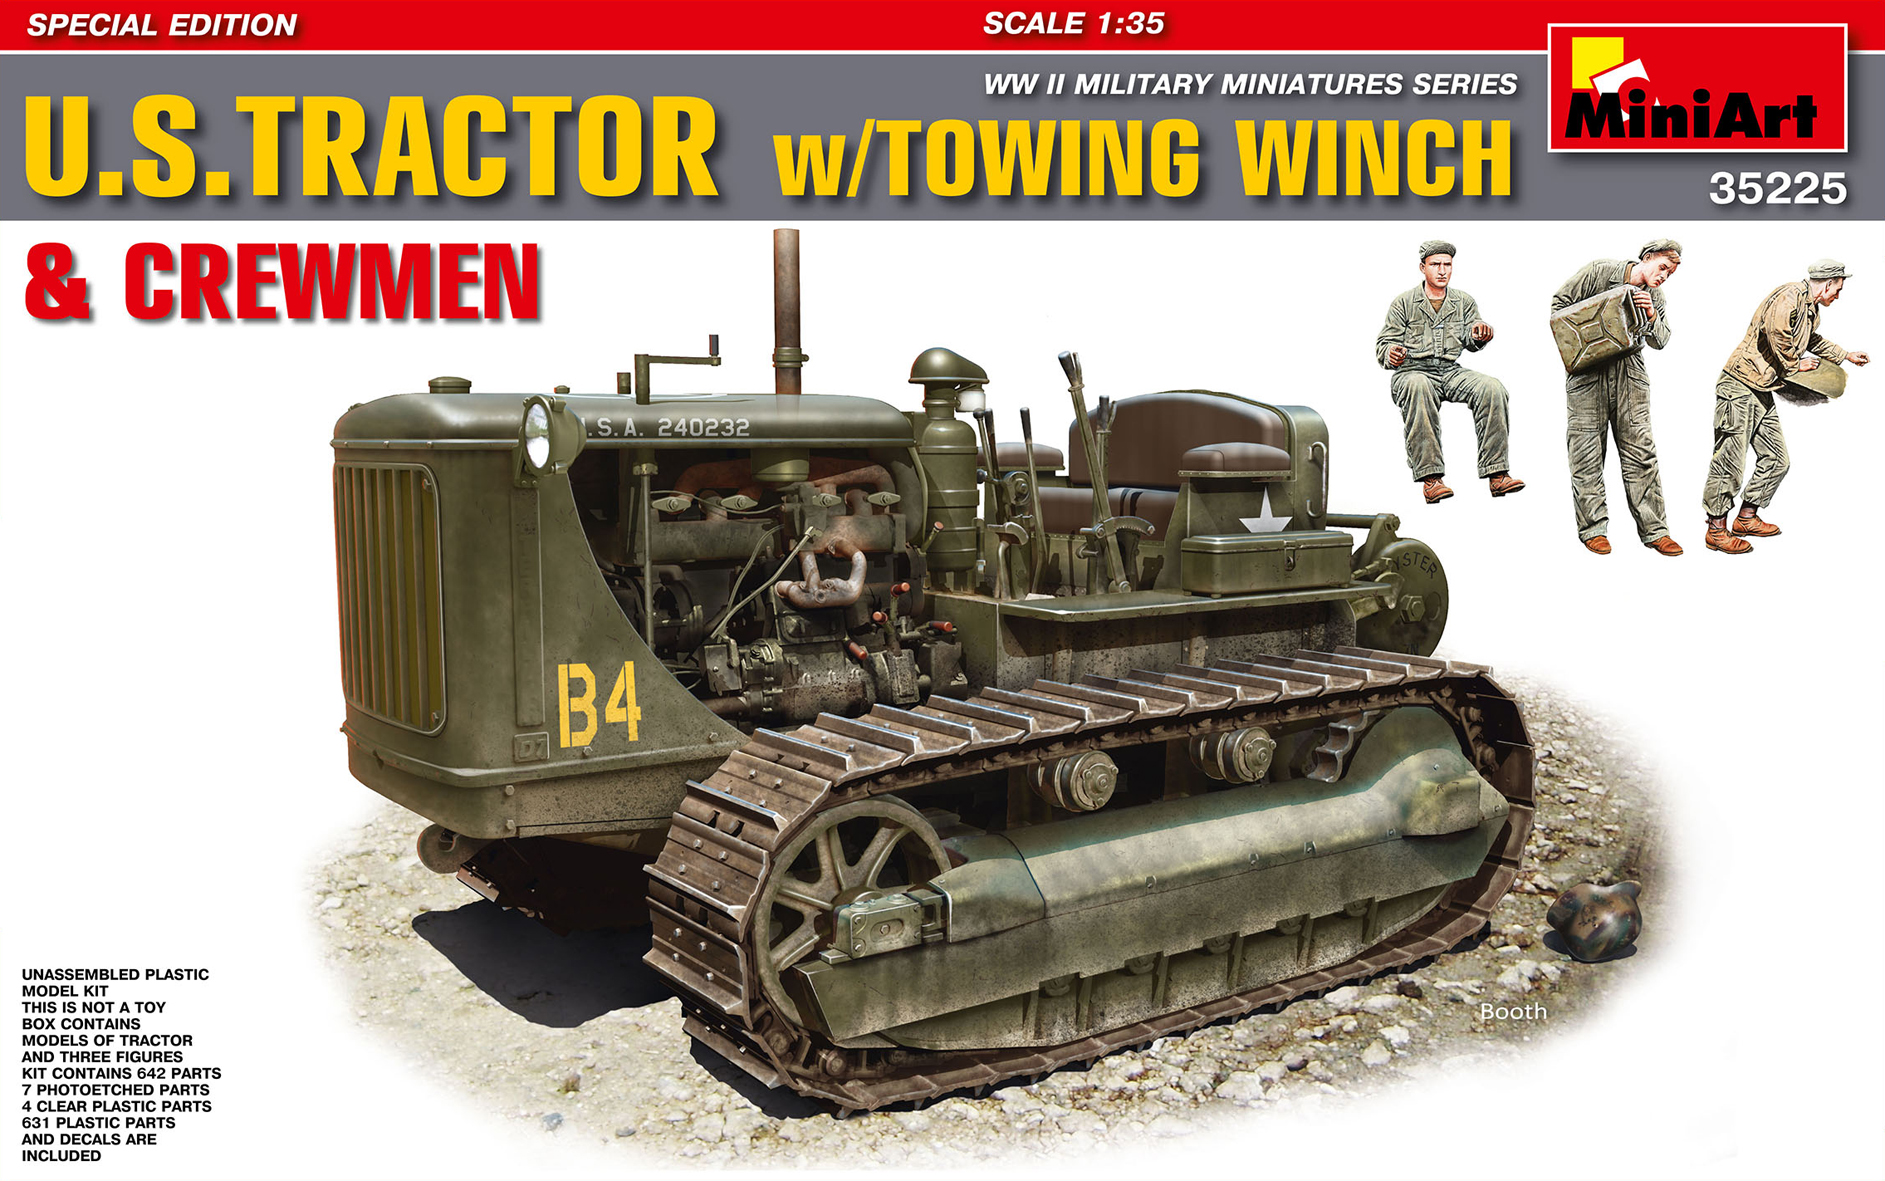 35225 U.S. TRACTOR w/Towing Winch & Crewmen